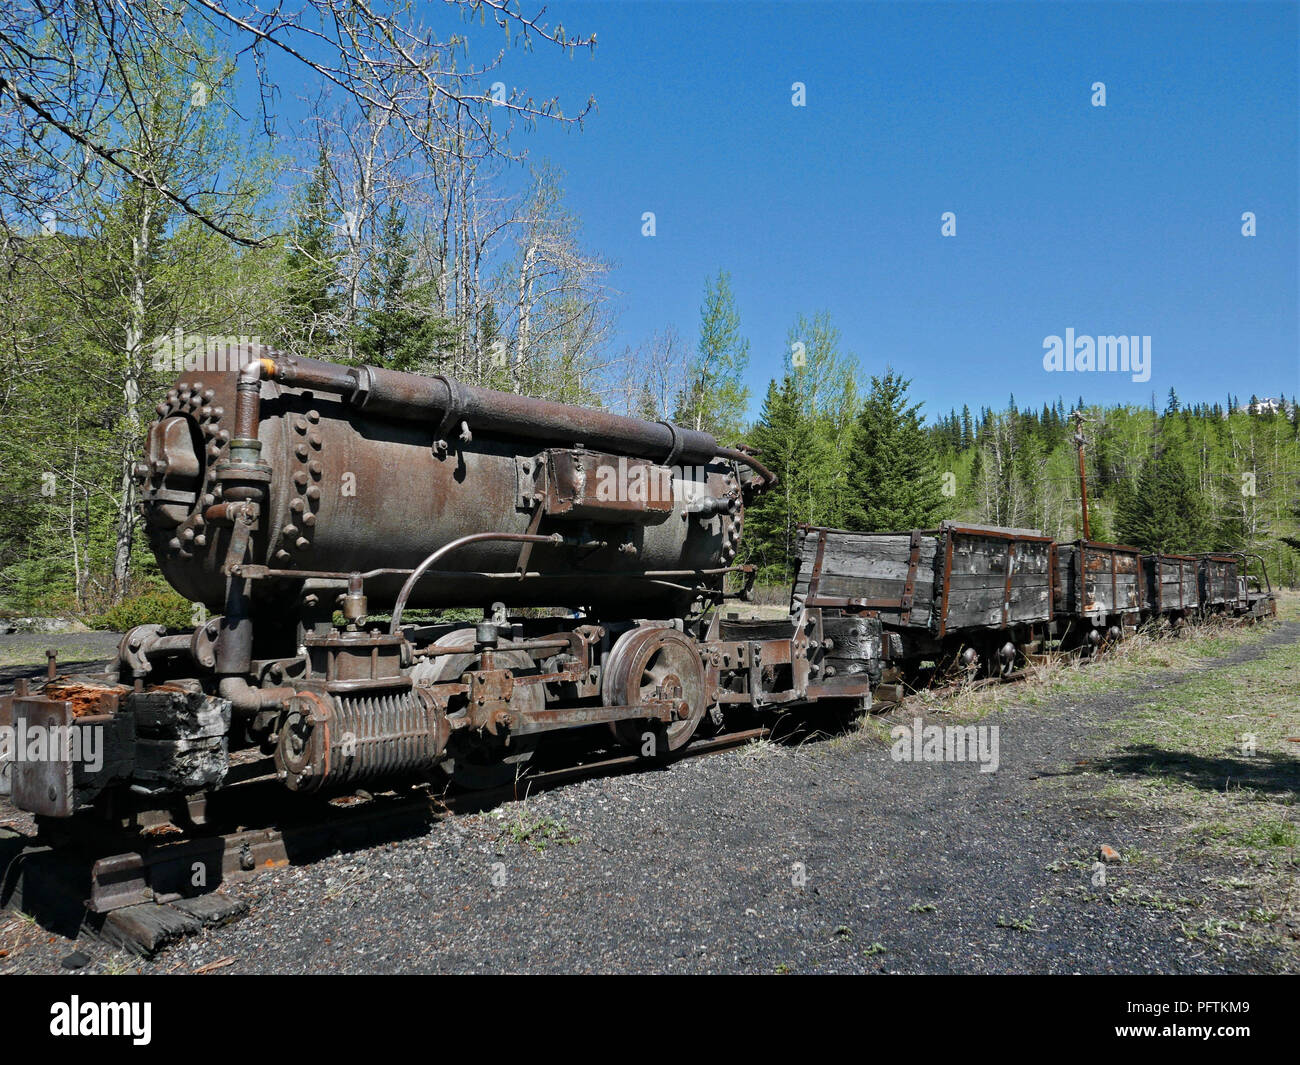 Abandoned Old Locomotive Engine. Lower Bankhead, Alberta, Canada - Stock Image